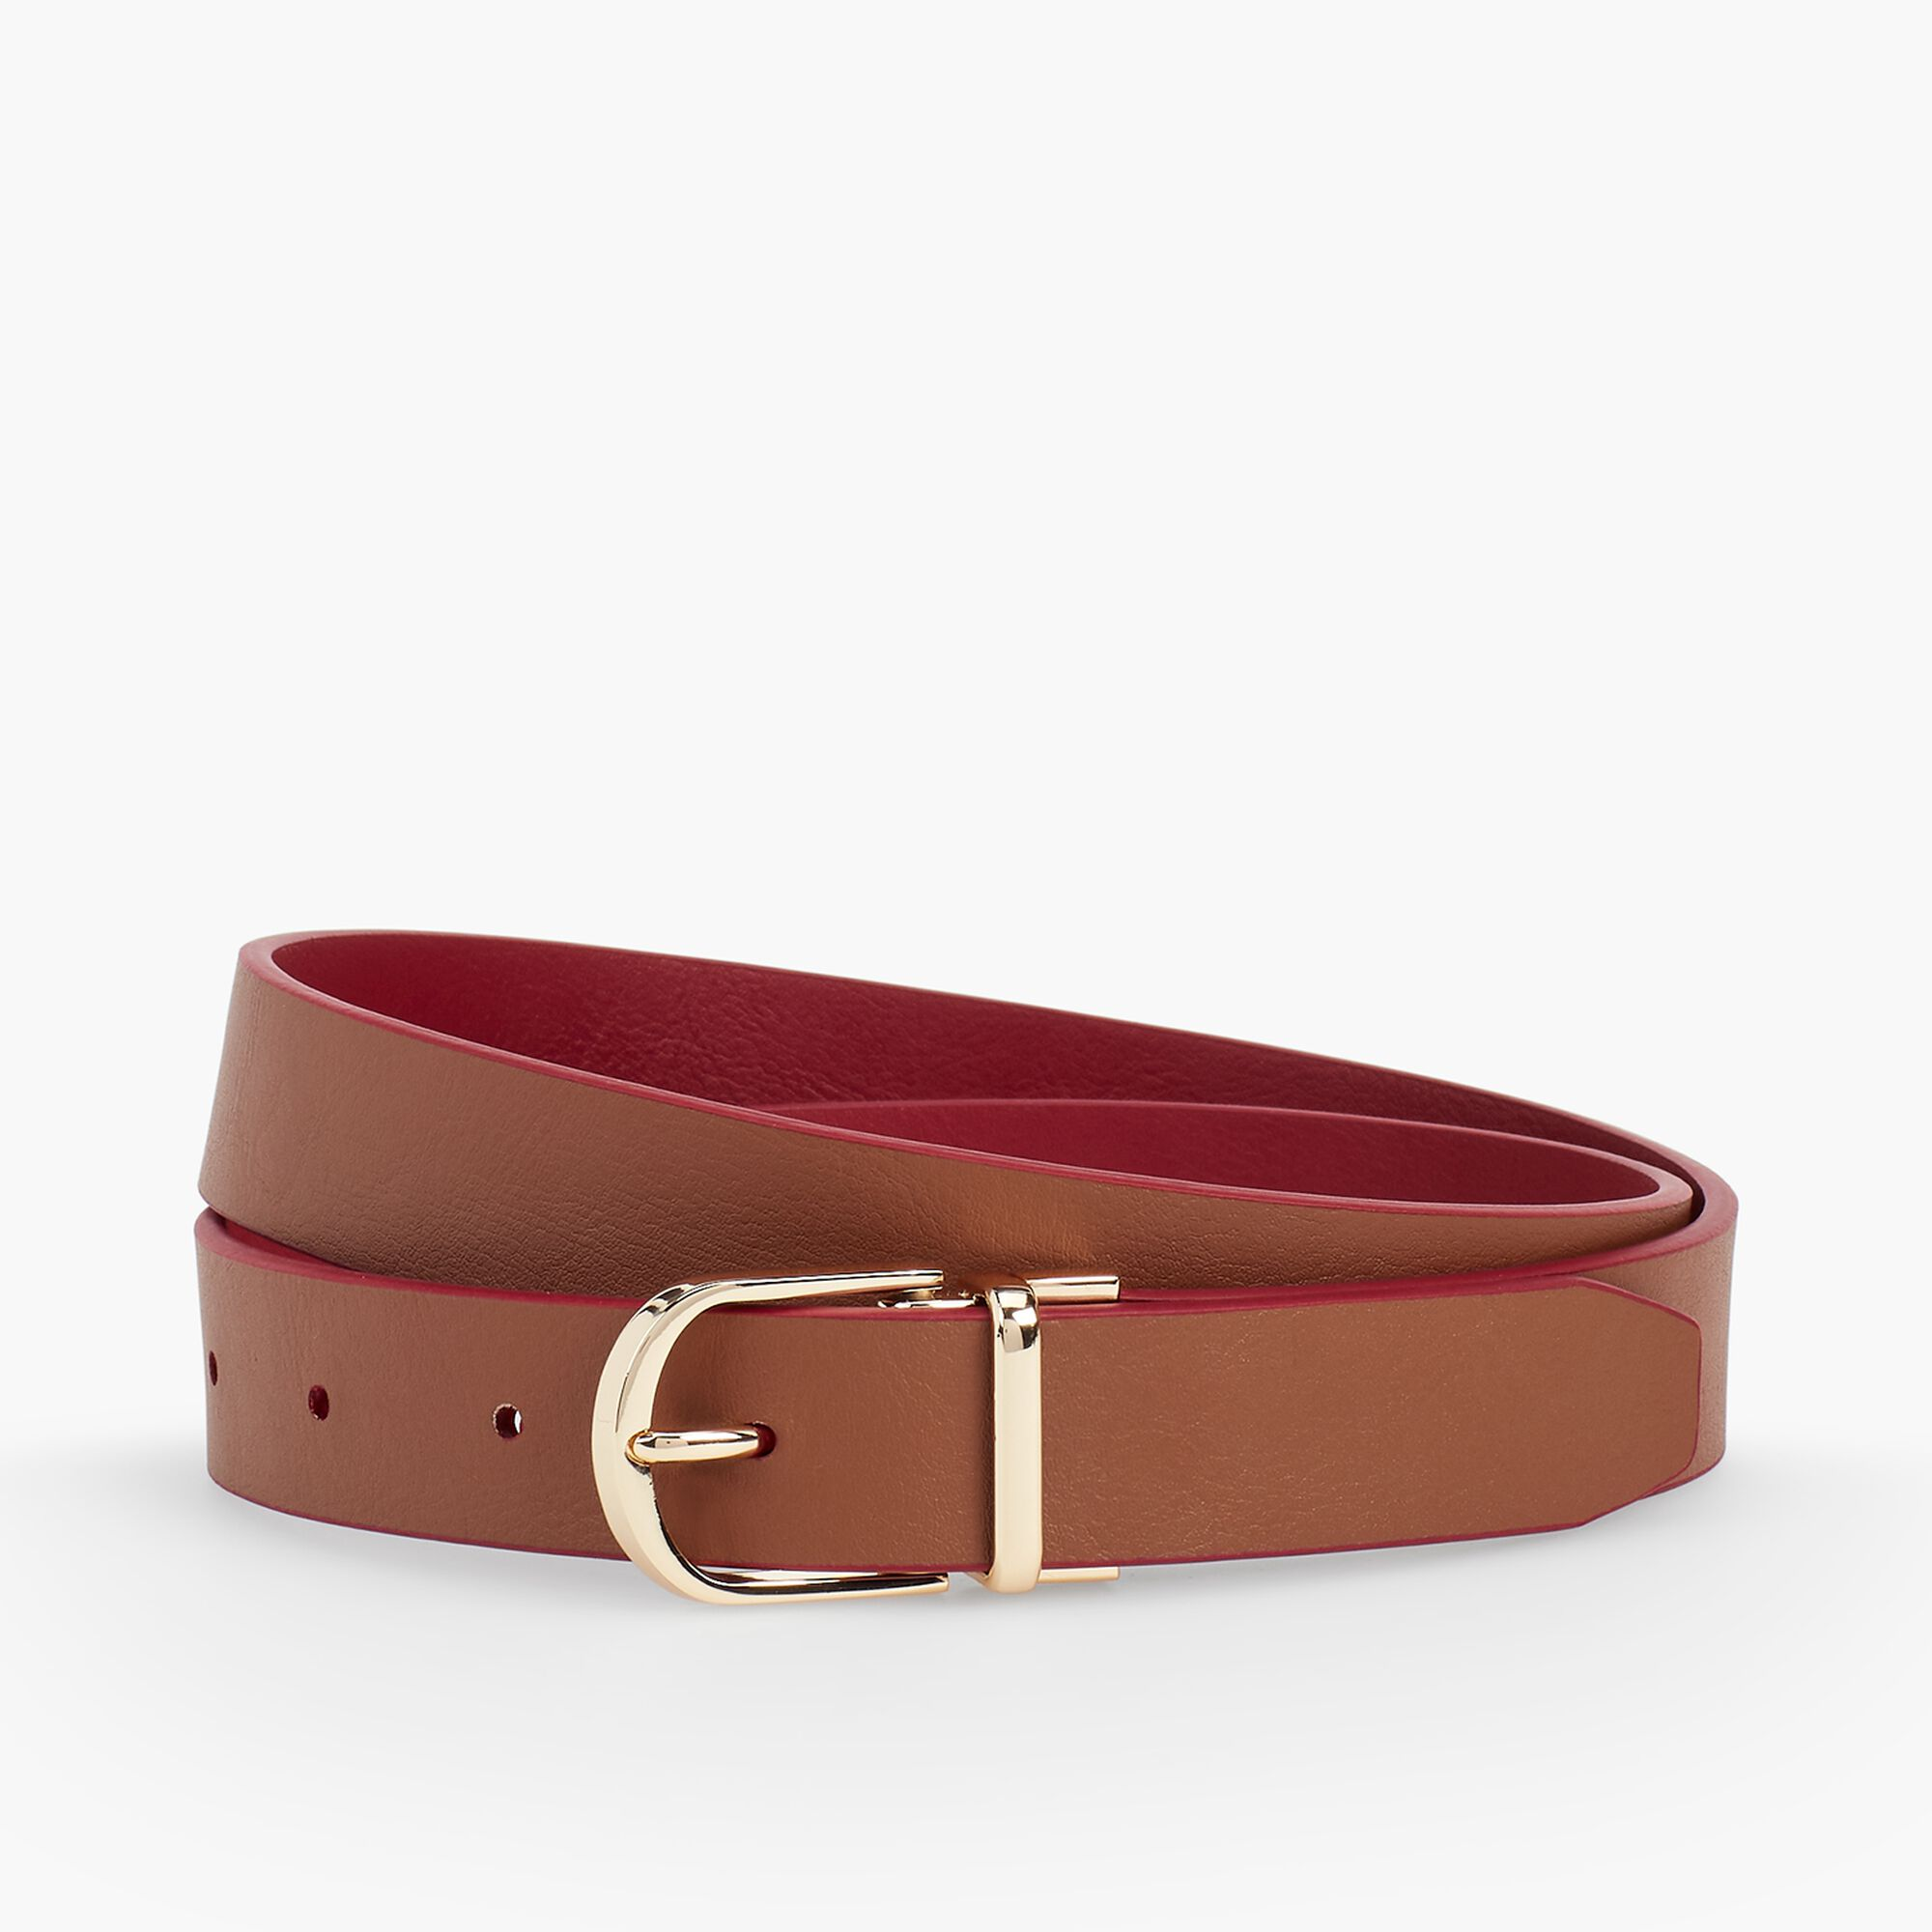 80657b271cd Leather Reversible Belt - Colors Opens a New Window.